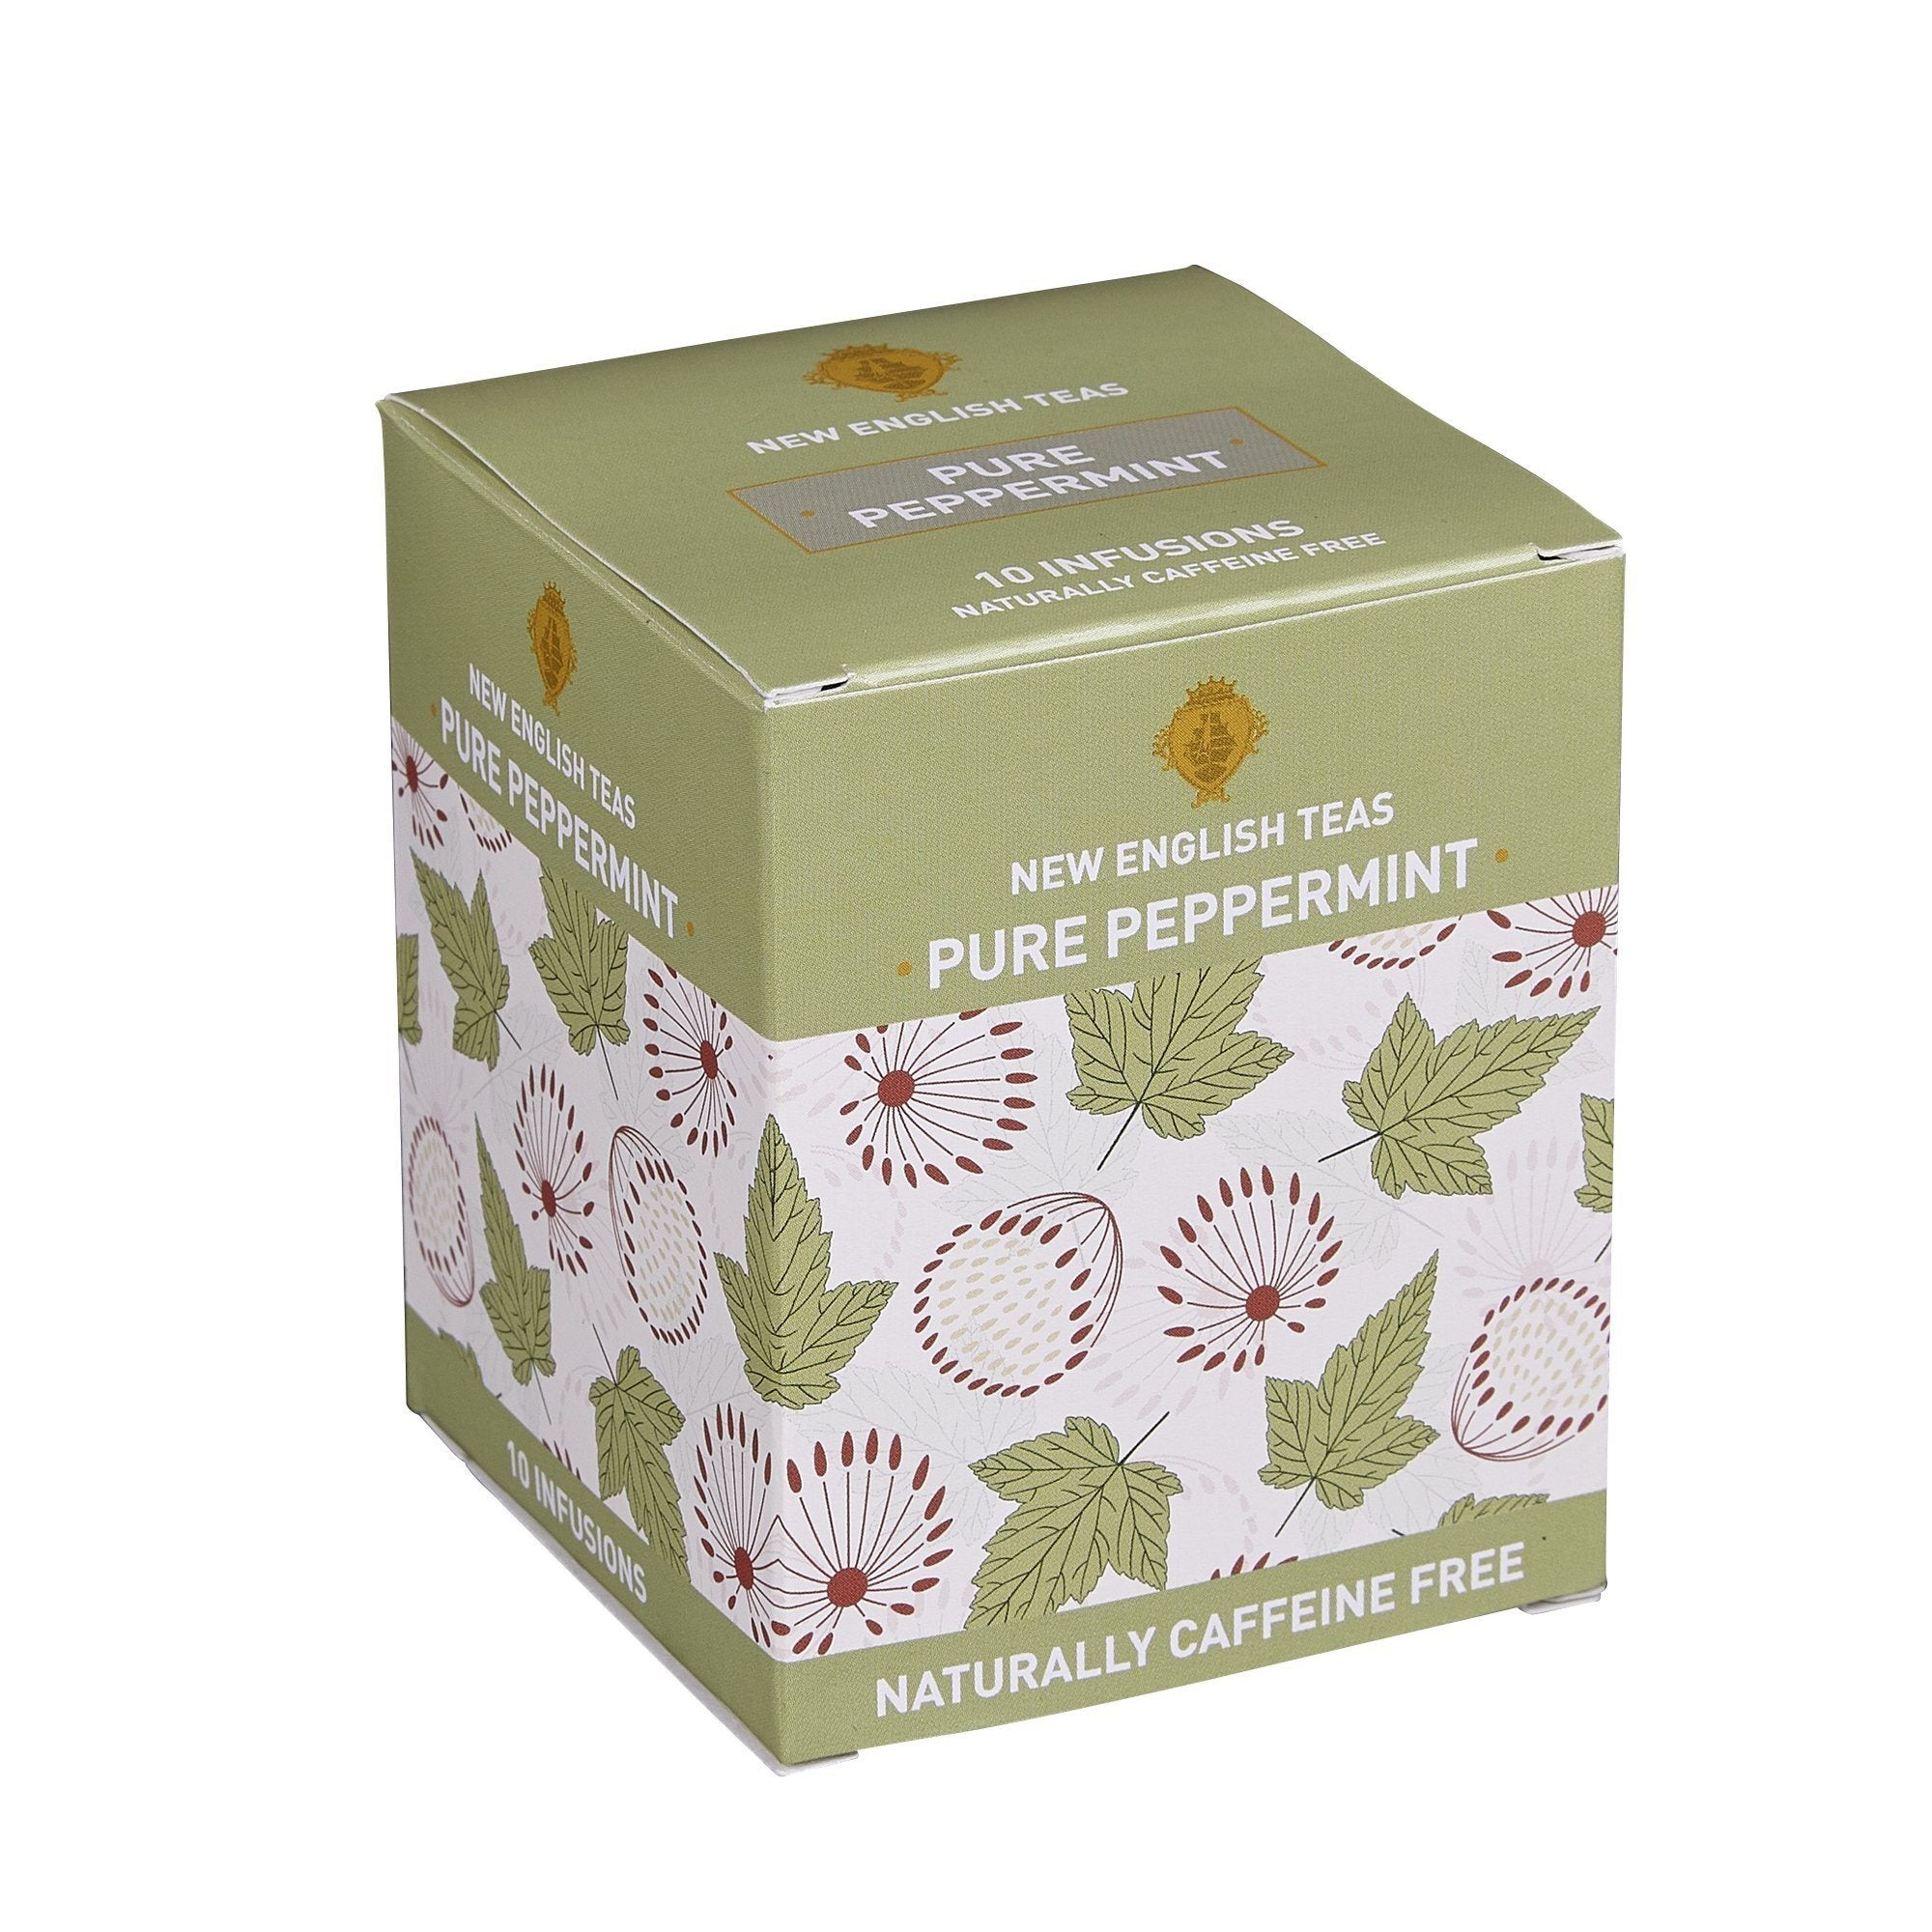 Pure Peppermint Tea 10 Individually Wrapped Teabags Herbal Tea New English Teas